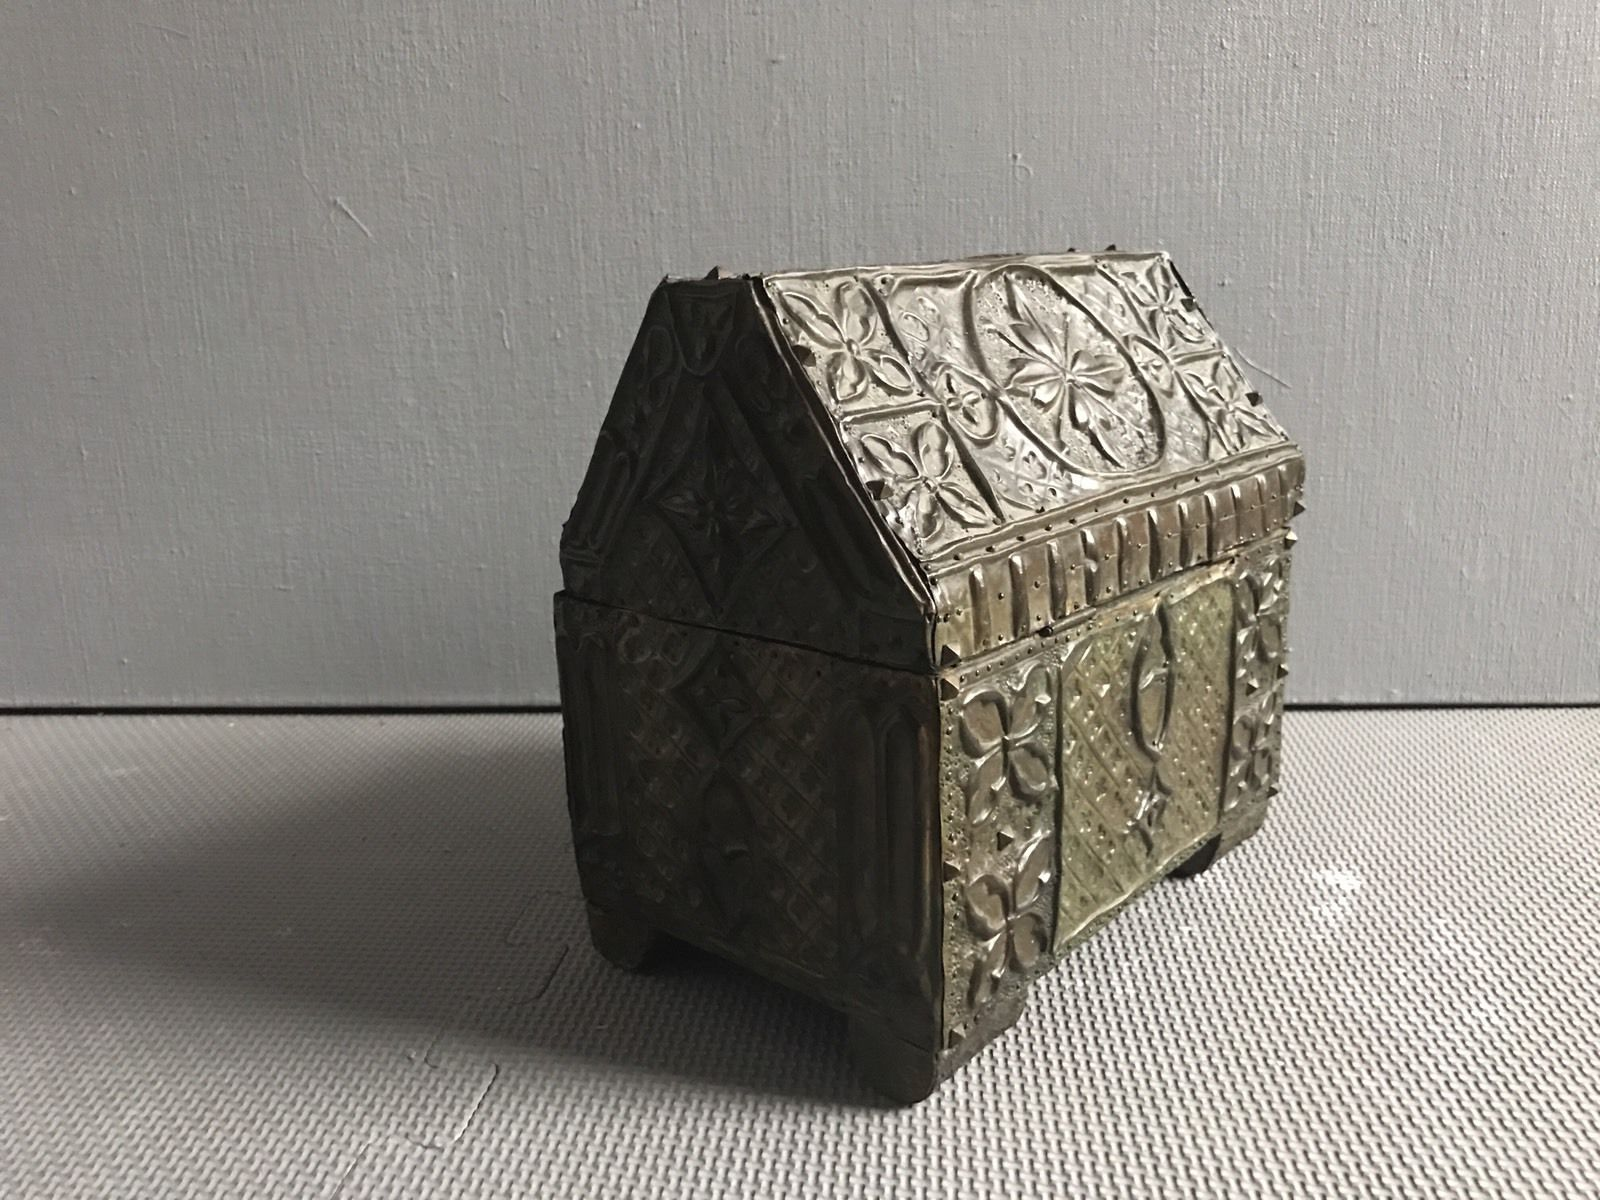 termok_antiques_french_repousse_casket_2.jpg